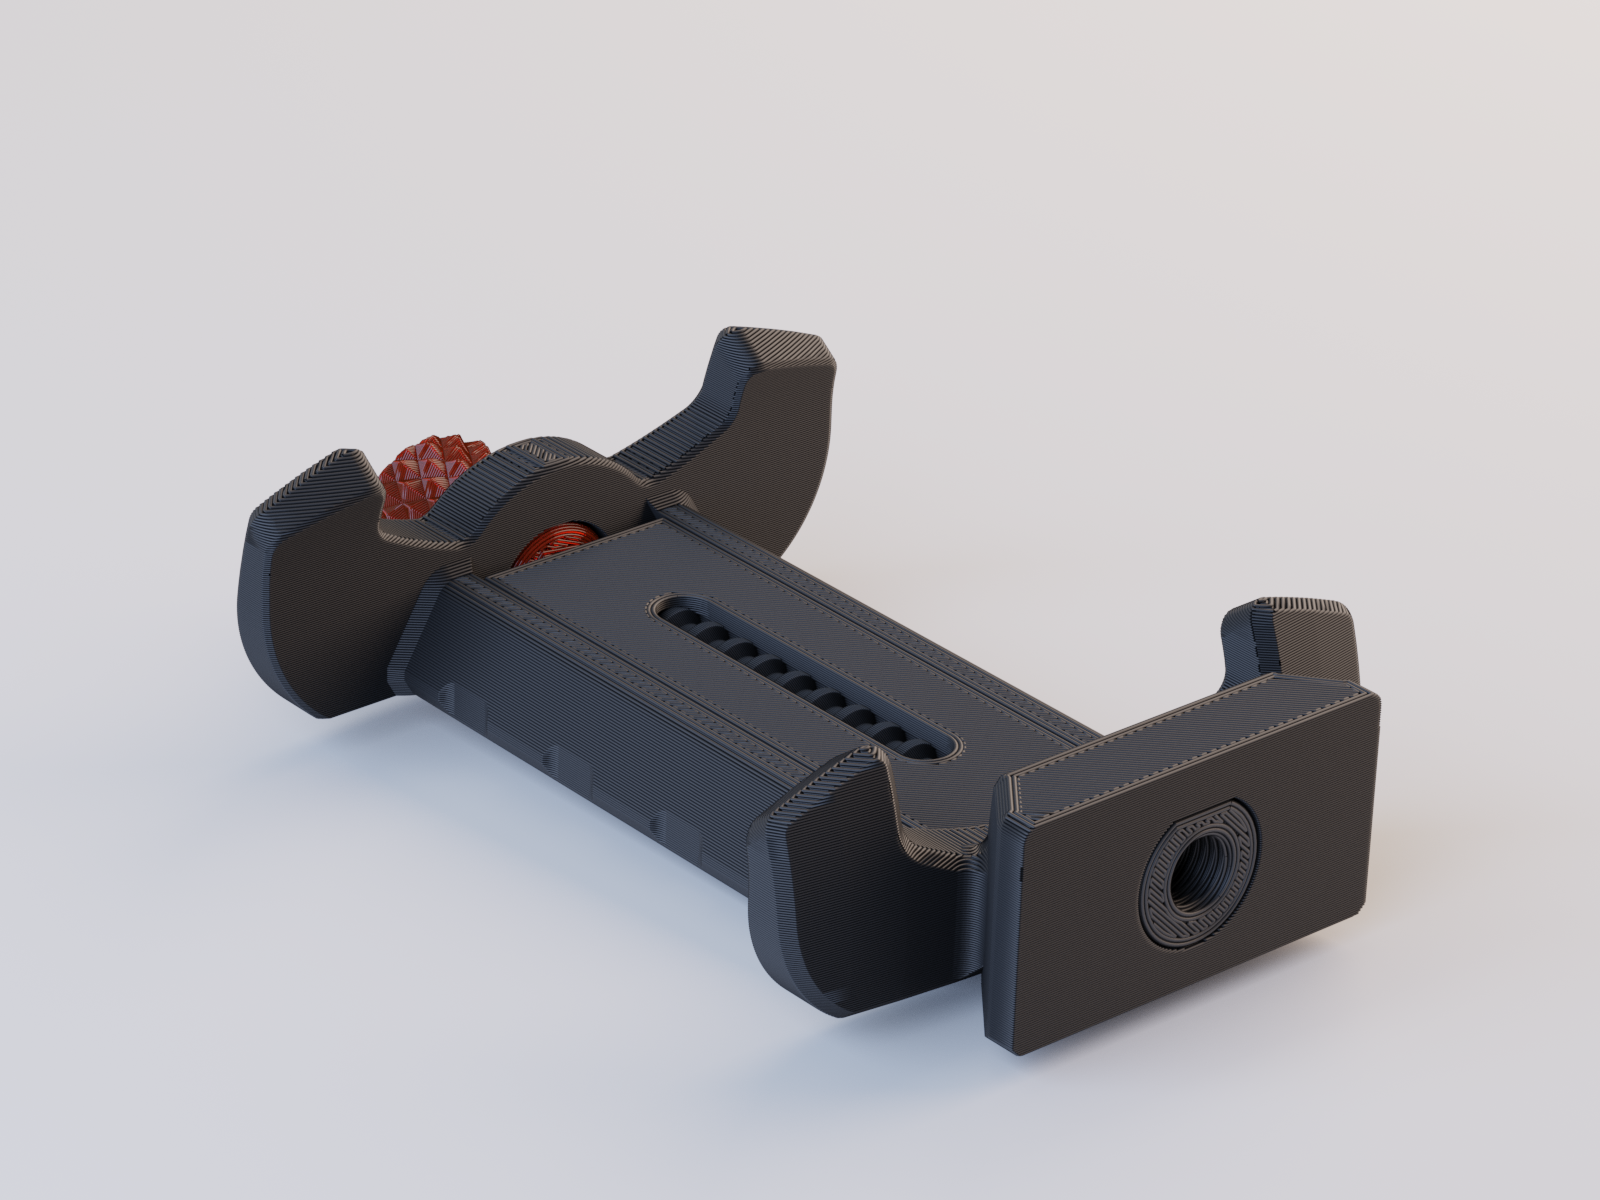 phone clamp3.png Download free STL file Tripod Mobile Phone Clamp V2 • Design to 3D print, Stamos